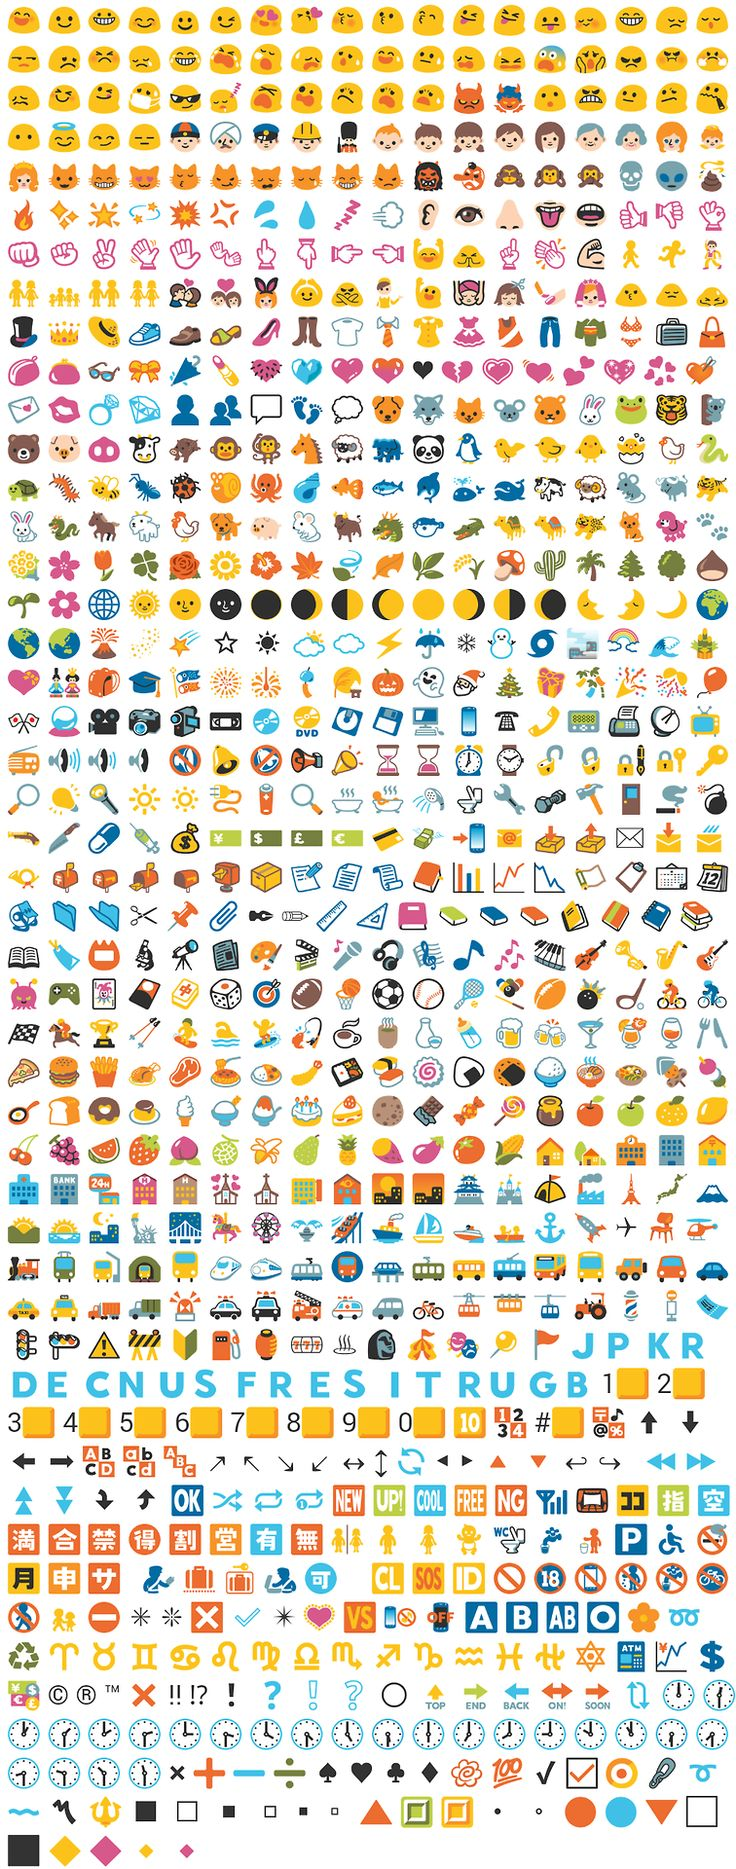 Full list of all the emojis in Google Hangouts and Android 4.4 KitKat via Emojipedia Android 5.0 Lollipop With Google I/O on today, what will Android 5.0 bring in the way of new emojis for Android  Lollipop? See also  Apple Emoji List  Microsoft Emoji List  Twitter Emoji List